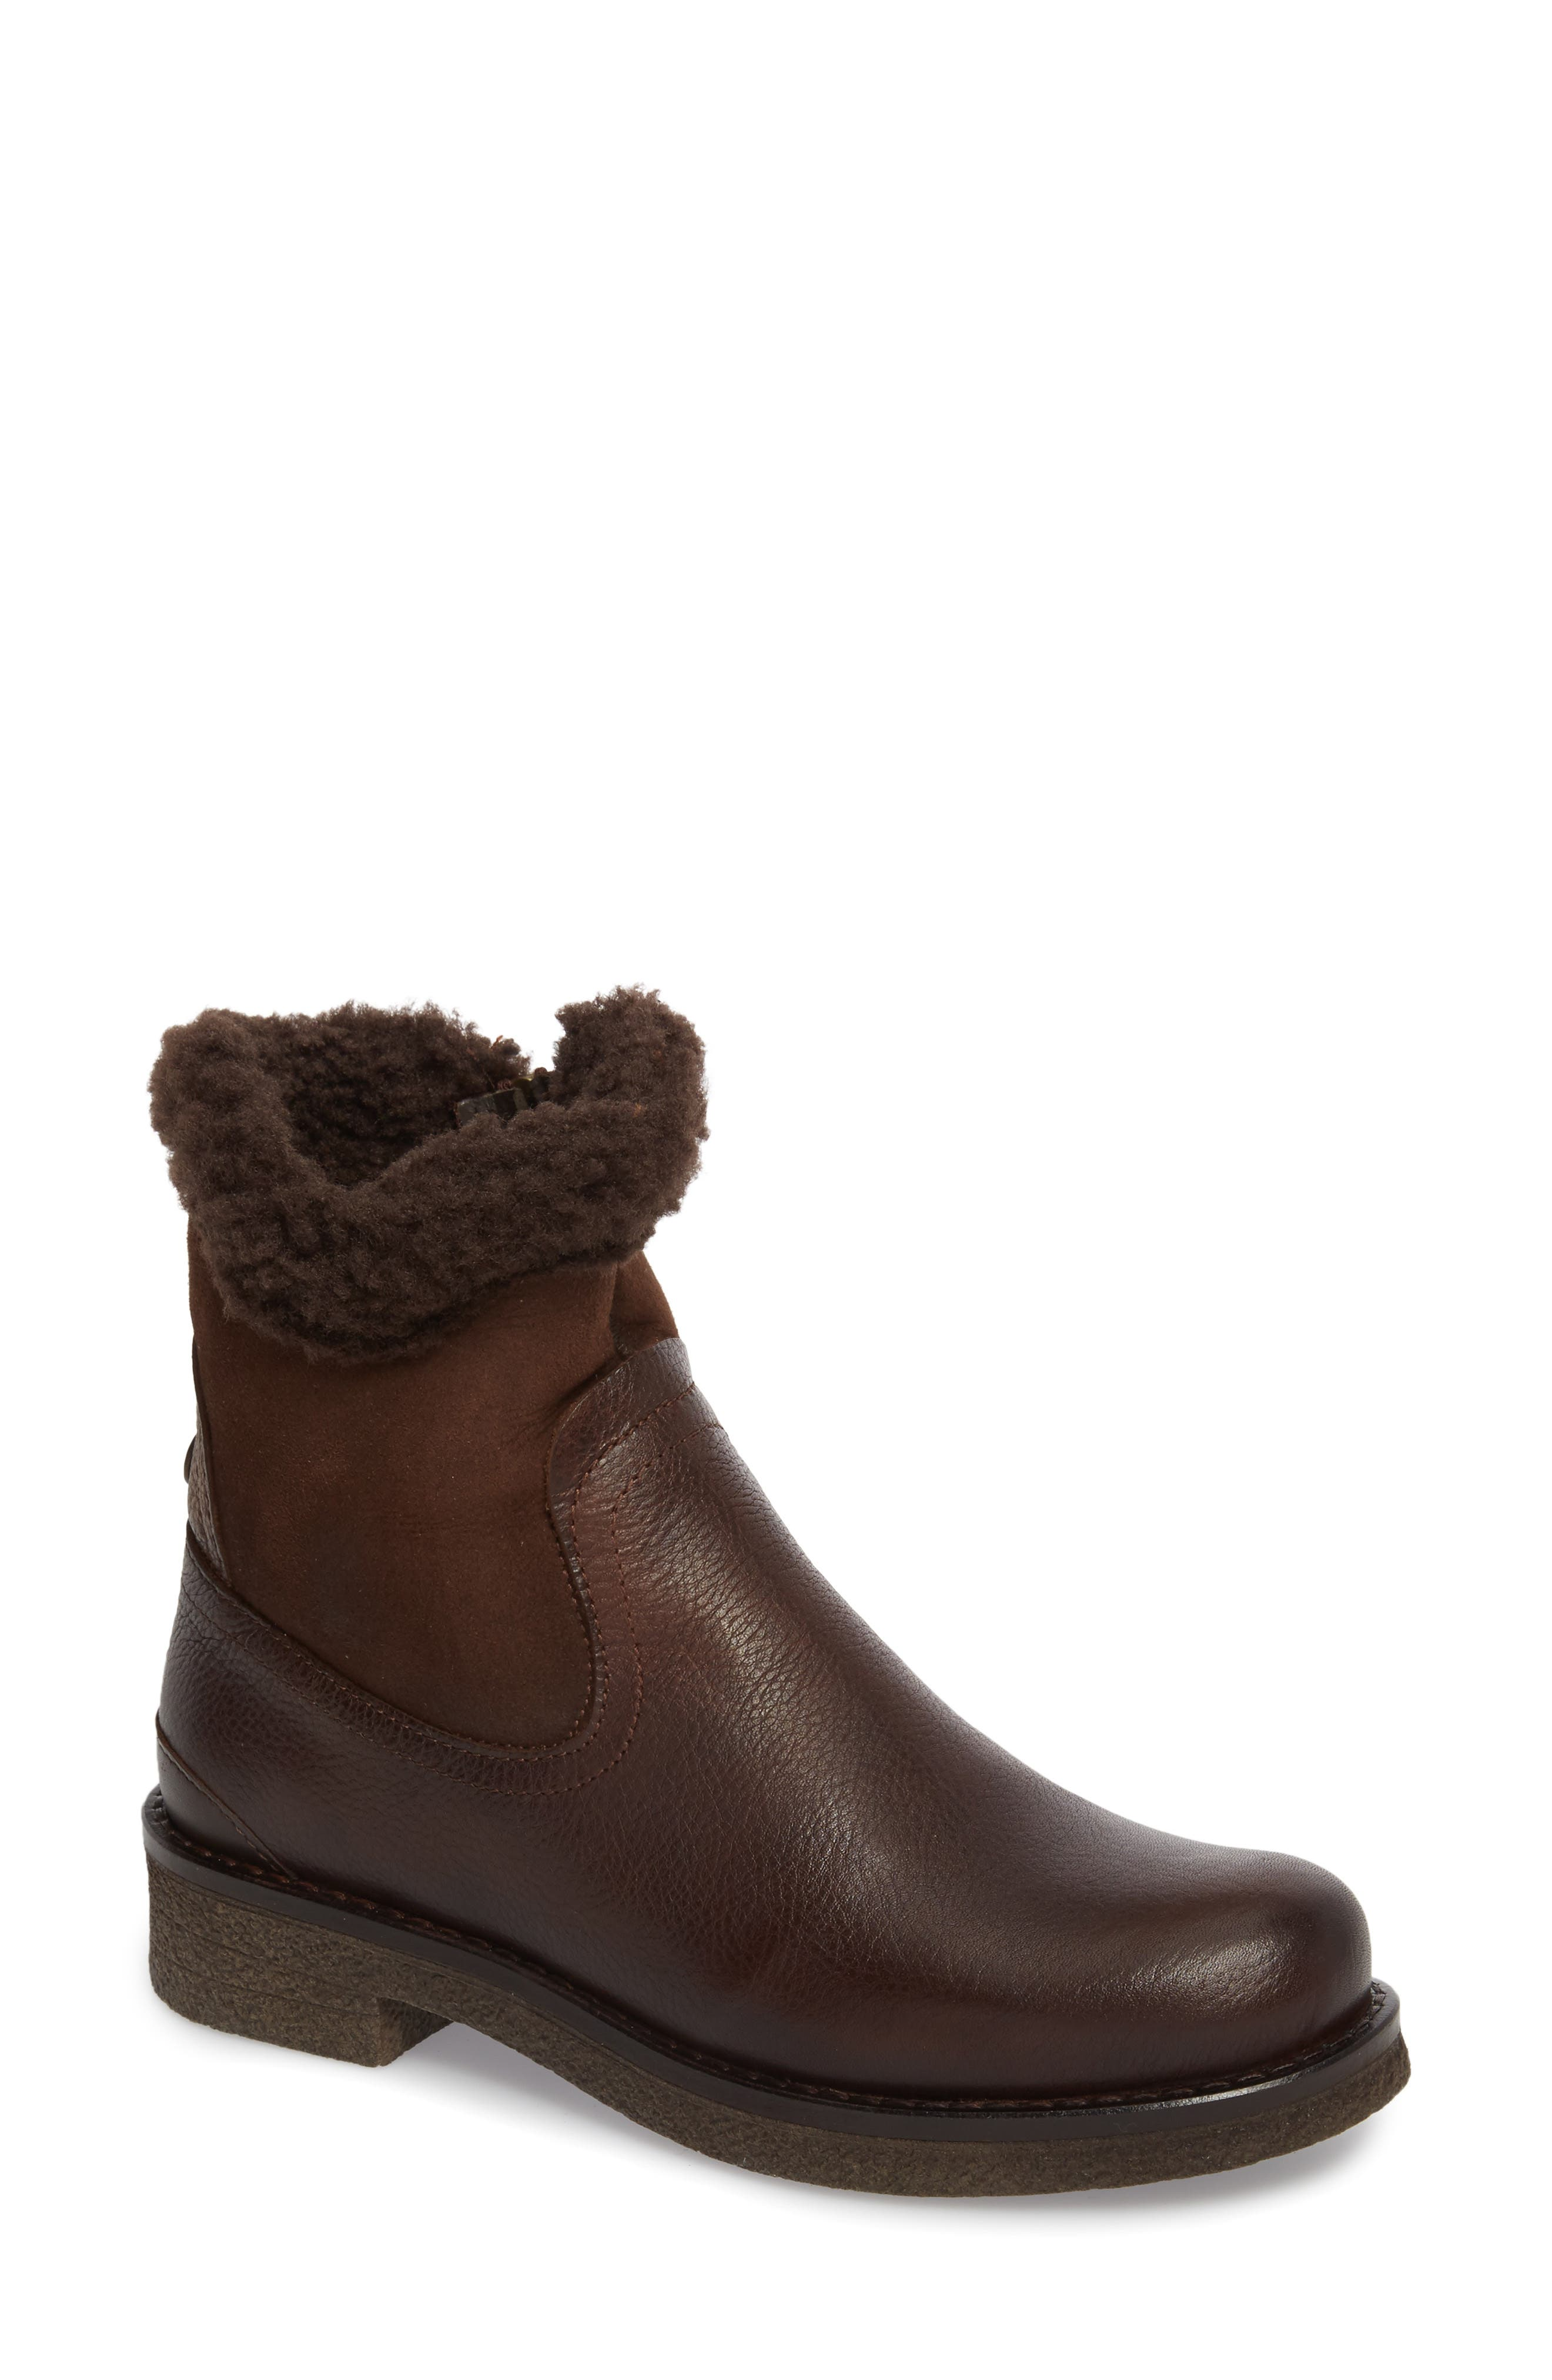 Odessa Waterproof Insulated Snow Boot,                             Main thumbnail 1, color,                             Brown Fur Leather